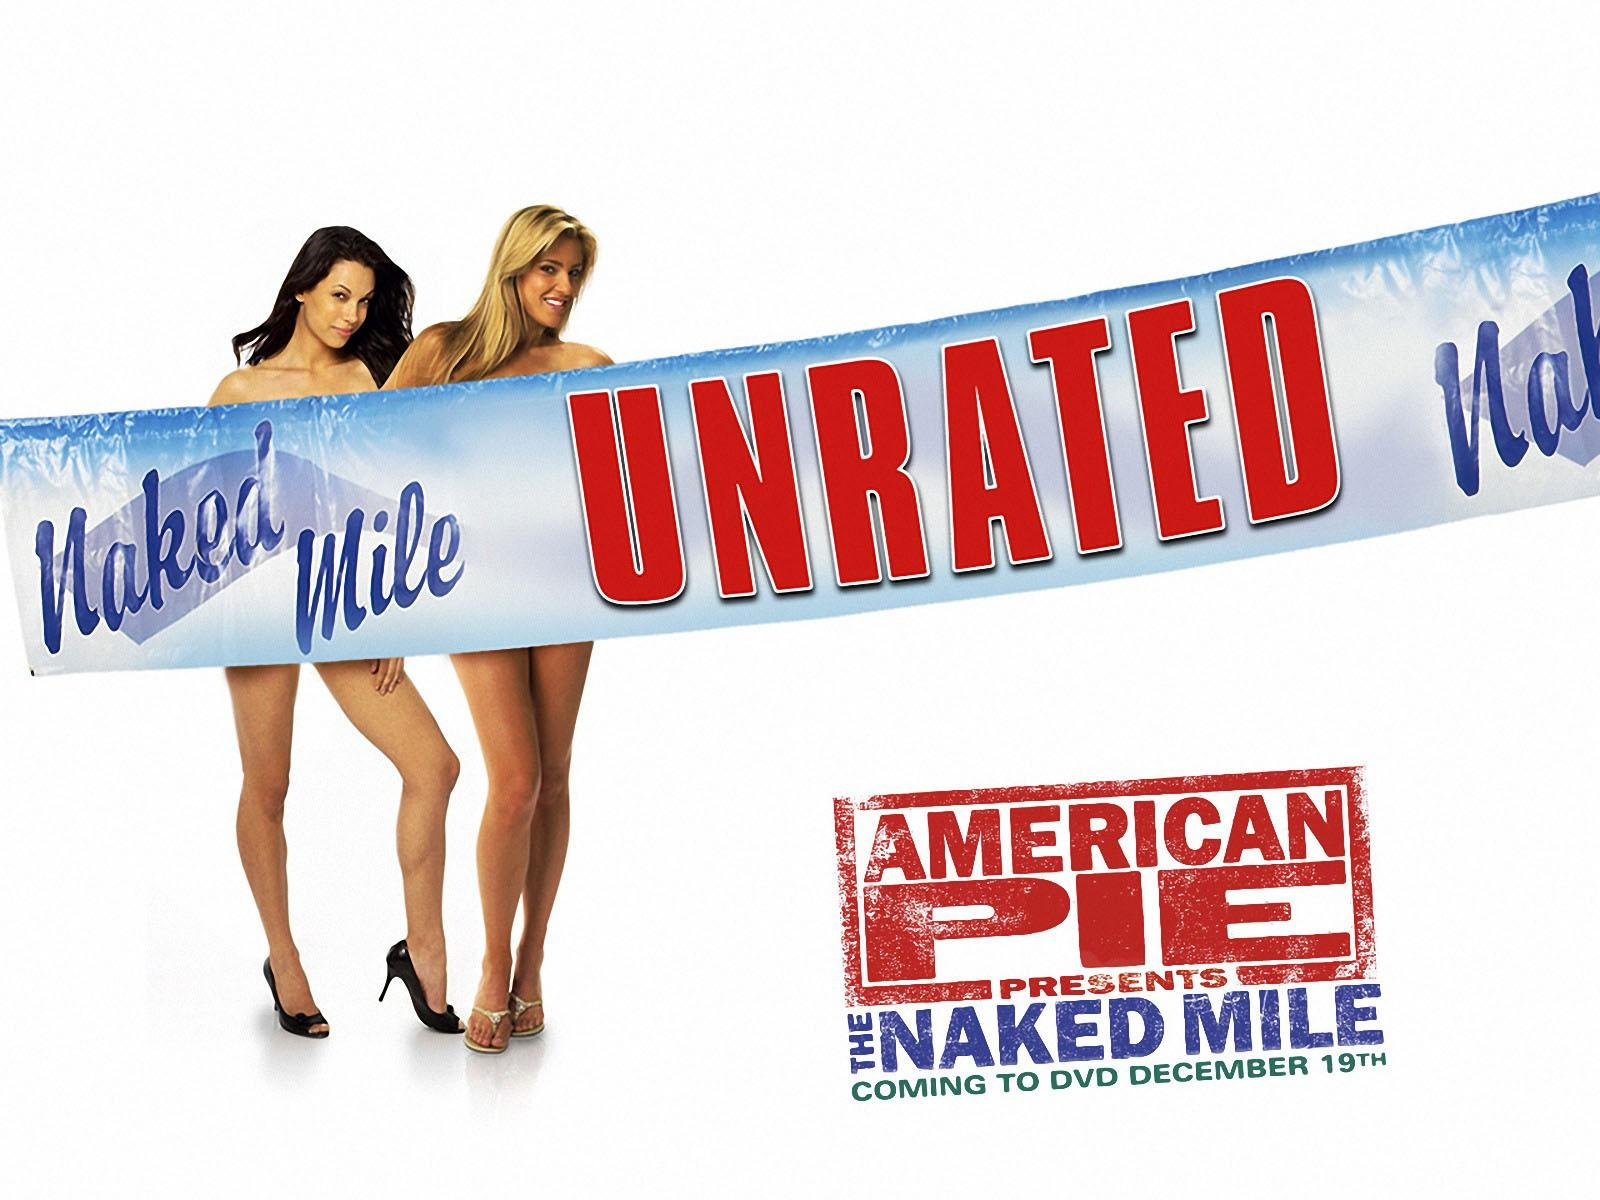 American pie the naked mile movie, amateur wives bound